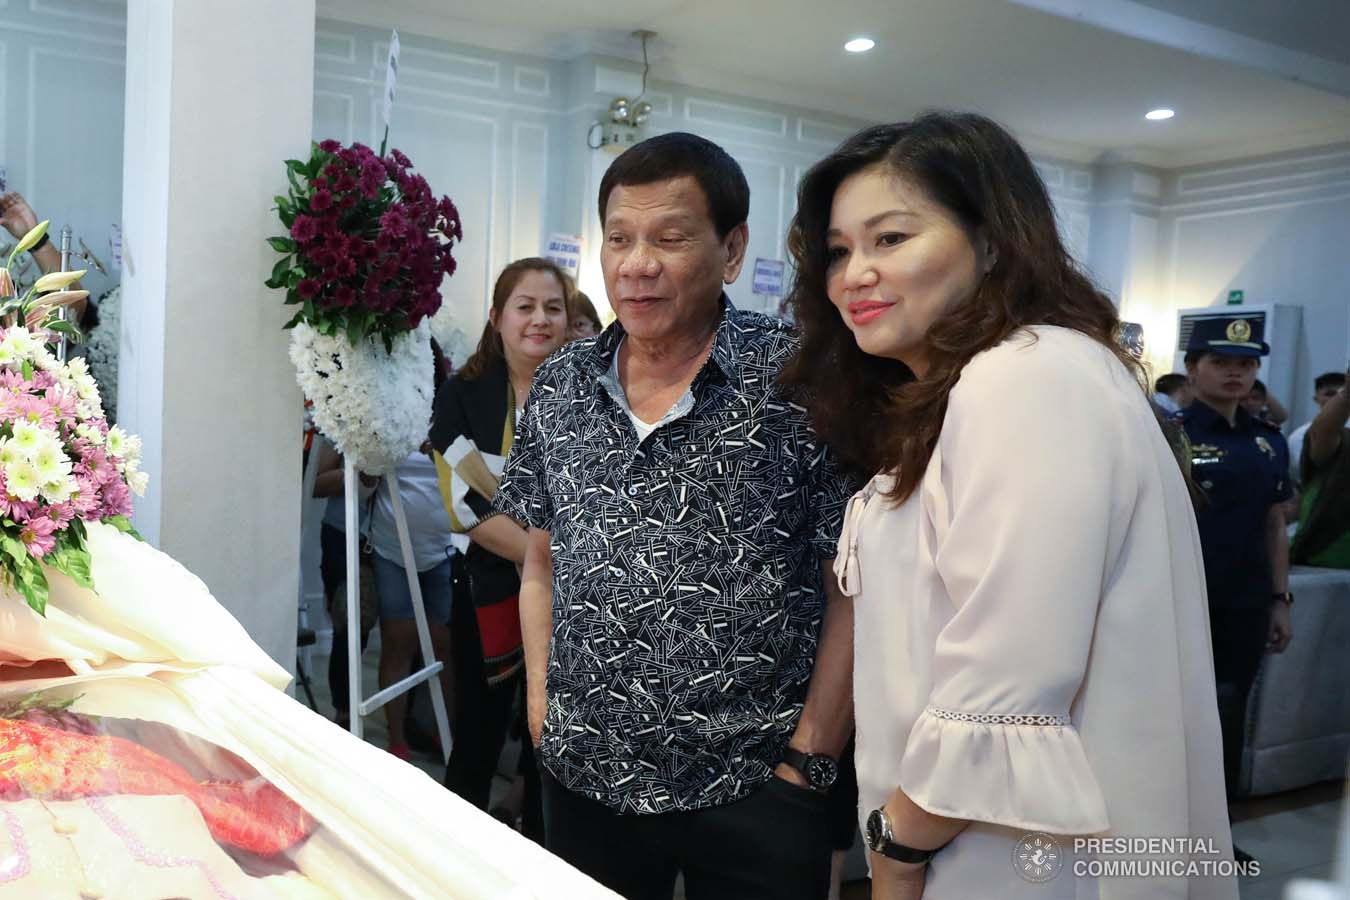 President Rodrigo Roa Duterte and his partner Cielito Avanceña pay their last respects to Cresencia Josol as they visit the wake at the Cosmopolitan Funeral Homes in Davao City on September 26, 2019. RICHARD MADELO/PRESIDENTIAL PHOTO